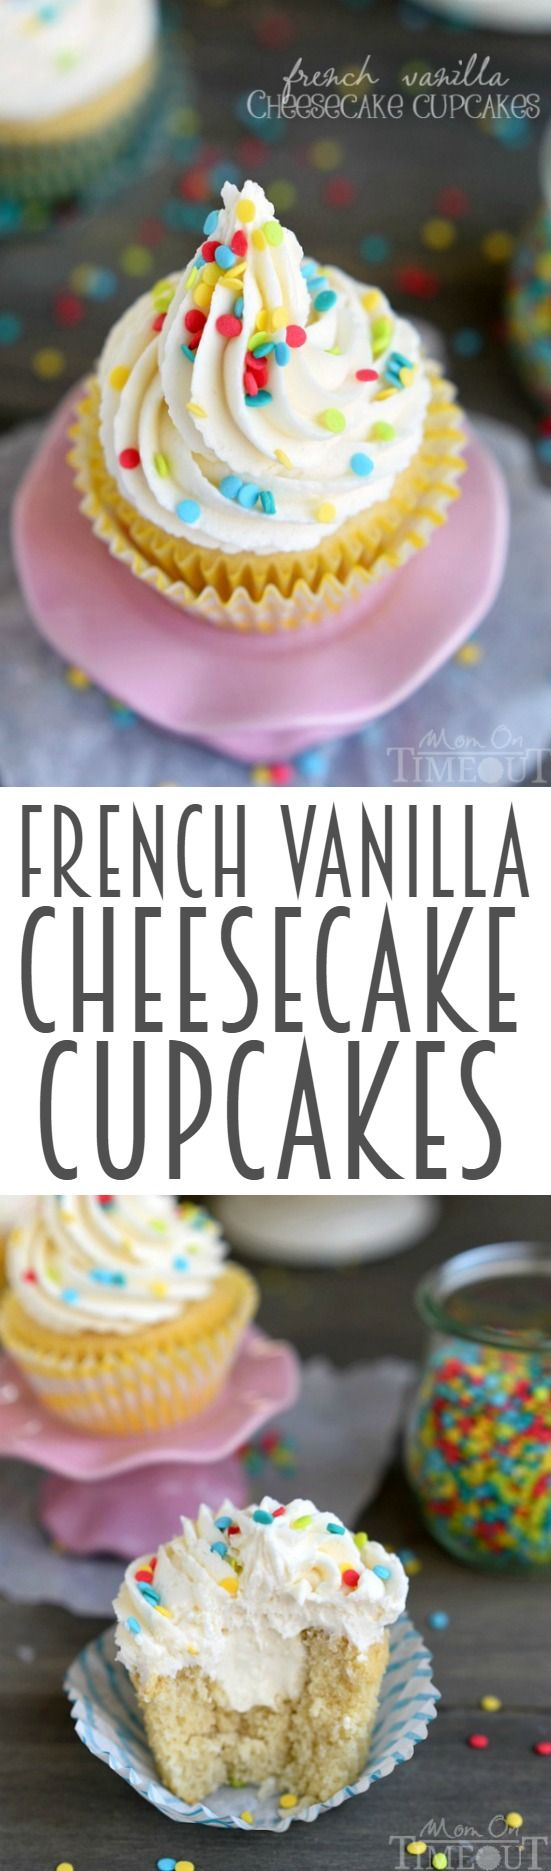 How about French Vanilla Cheesecake Cupcakes for the dessert win? It's like two desserts in one! Cheesecake filling is nestled inside a delicious vanilla cupcake and topped with the most amazing vanilla frosting ever - don't forget the sprinkles! | MomOnTimeout.com